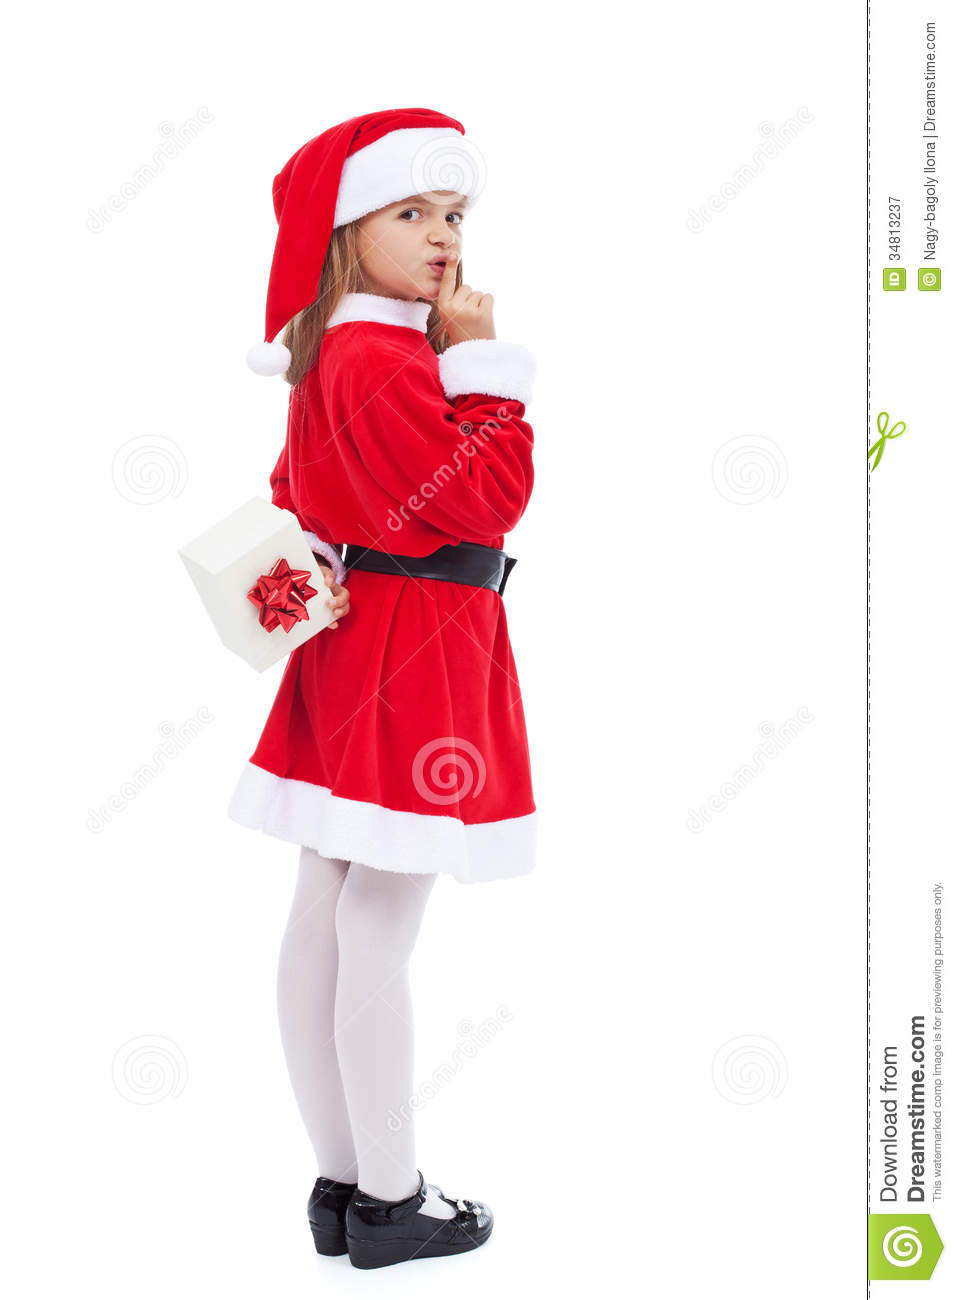 Look for Santa suits, beards Rubie's Flannel Santa Suit with Beard and Wig. by Rubie's. $ - $ $ 23 $ 49 95 Prime. FREE Shipping on eligible orders. Some sizes/colors are Prime eligible. out of 5 stars Product Features Friends, family, and the kid inside everyone will enjoy a visit from Santa.